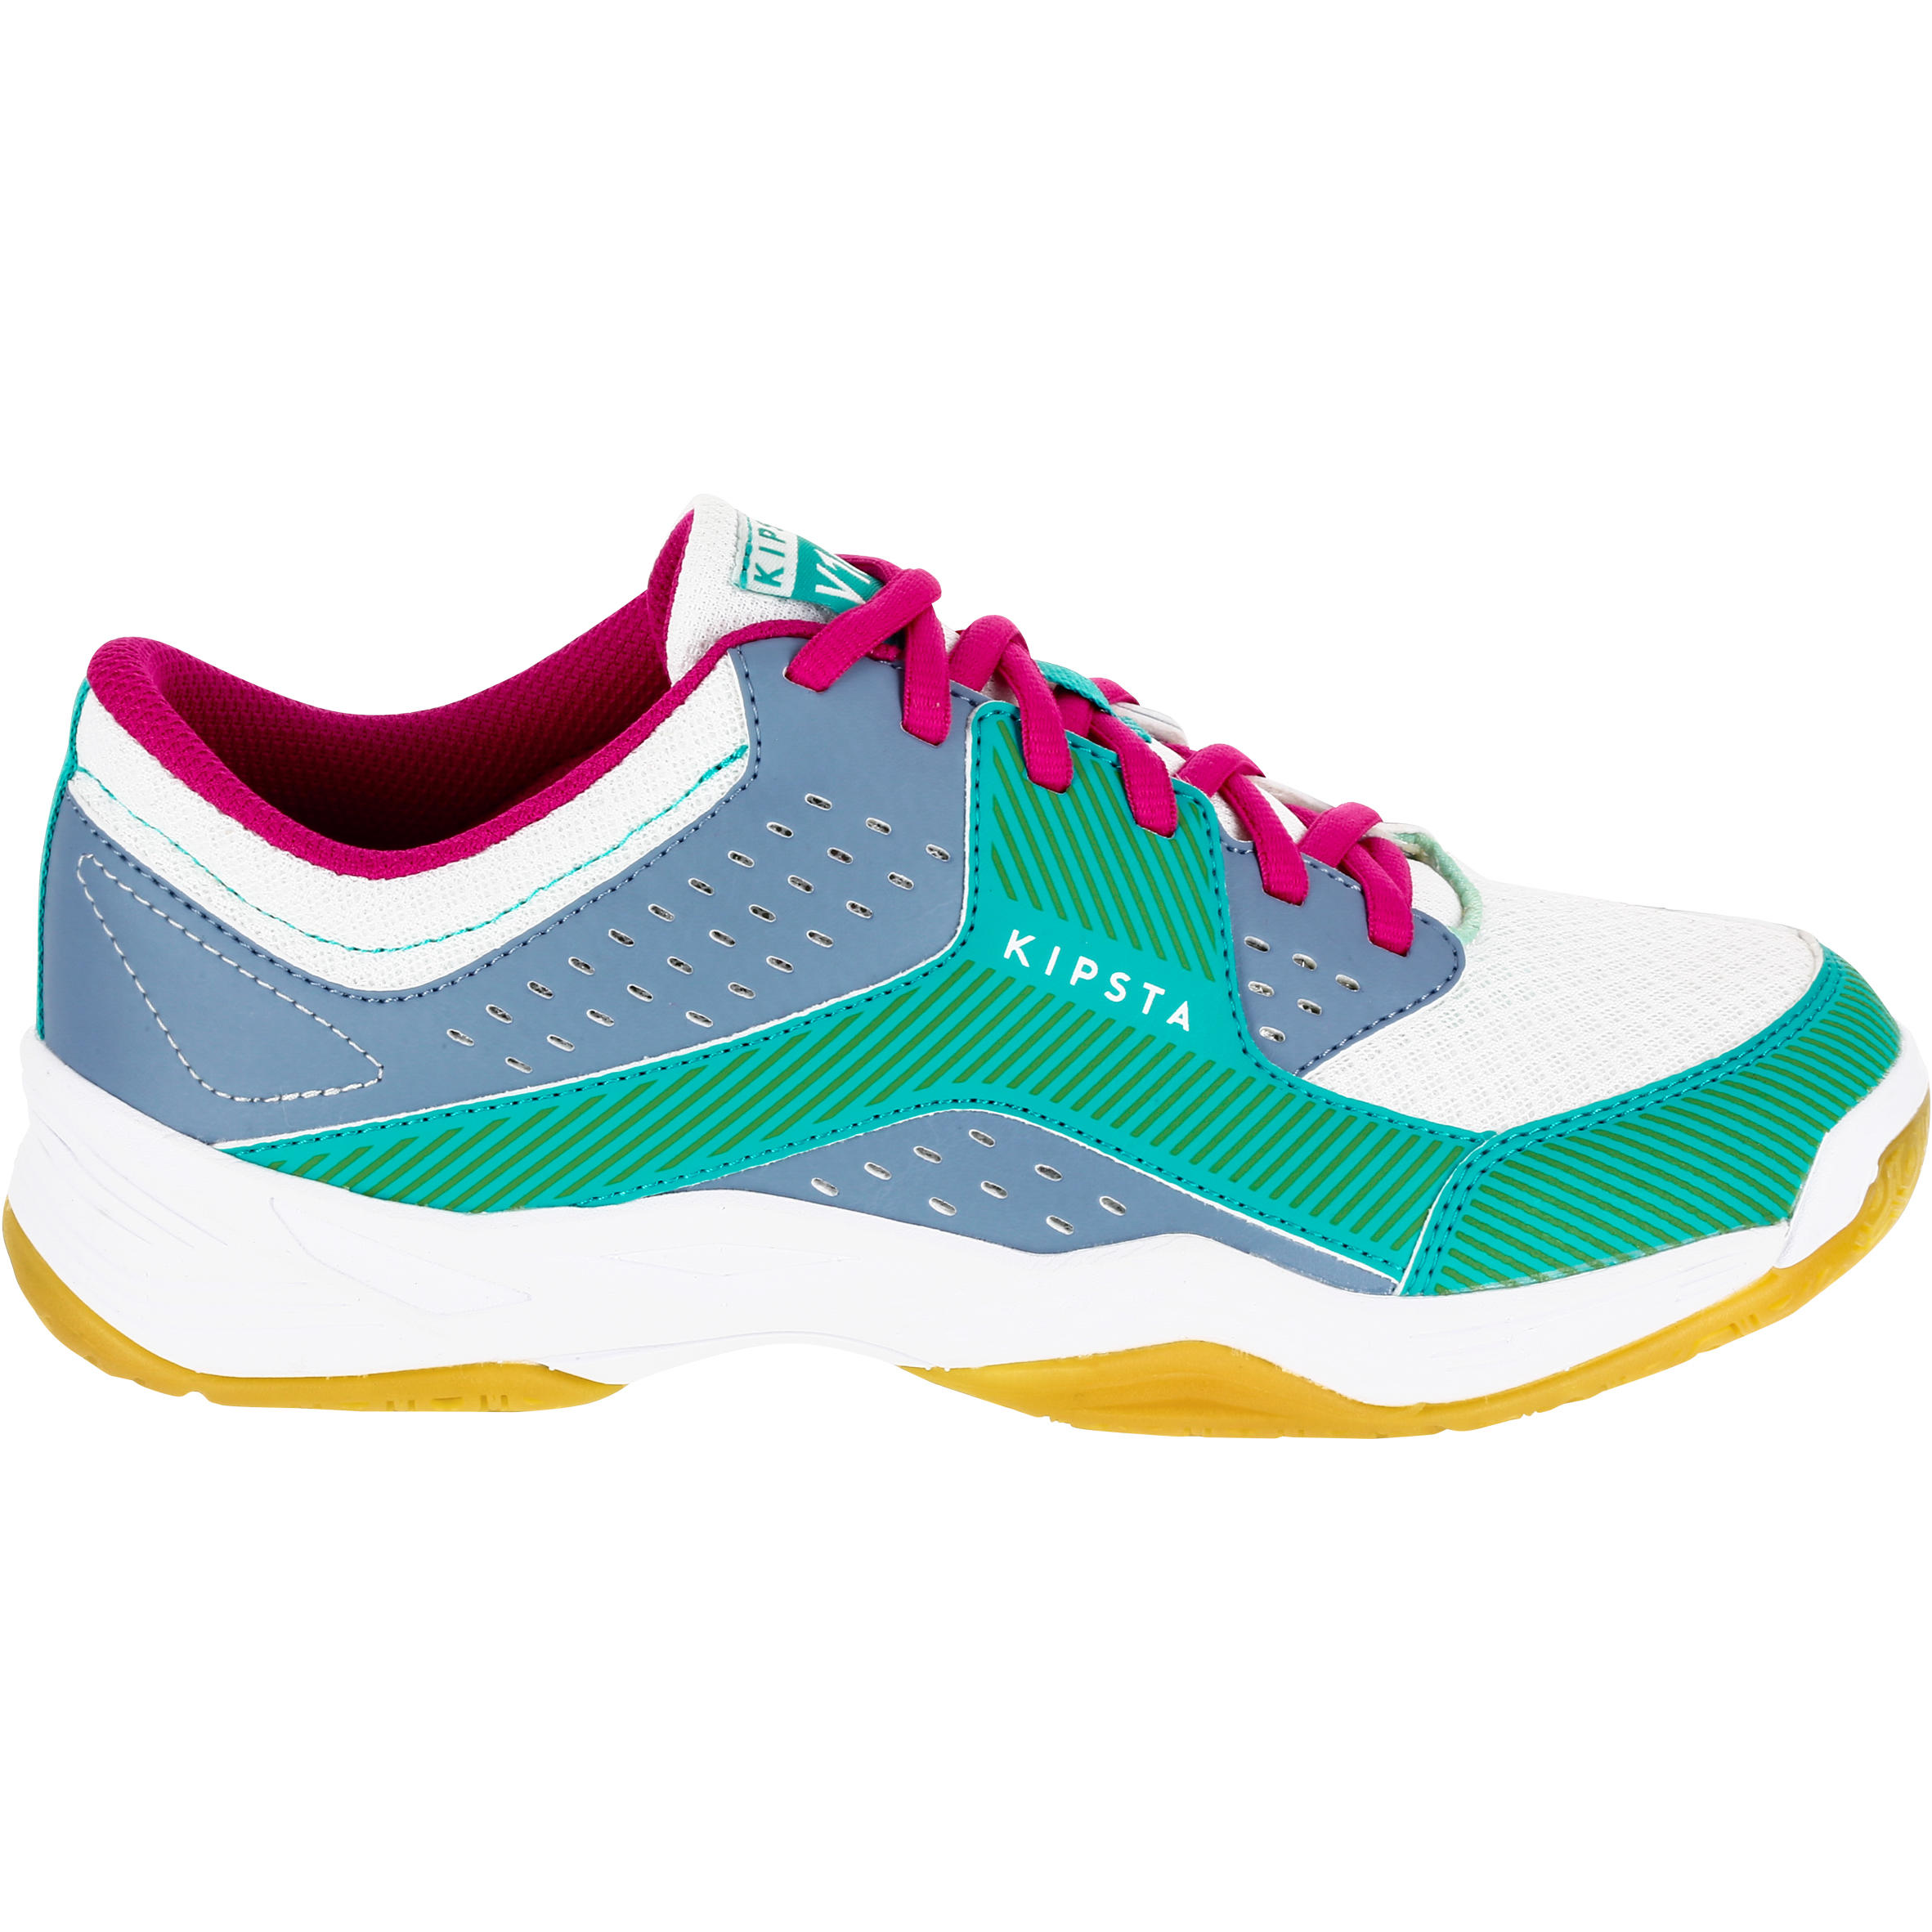 Volleyball Shoes - Blue/Green - Decathlon